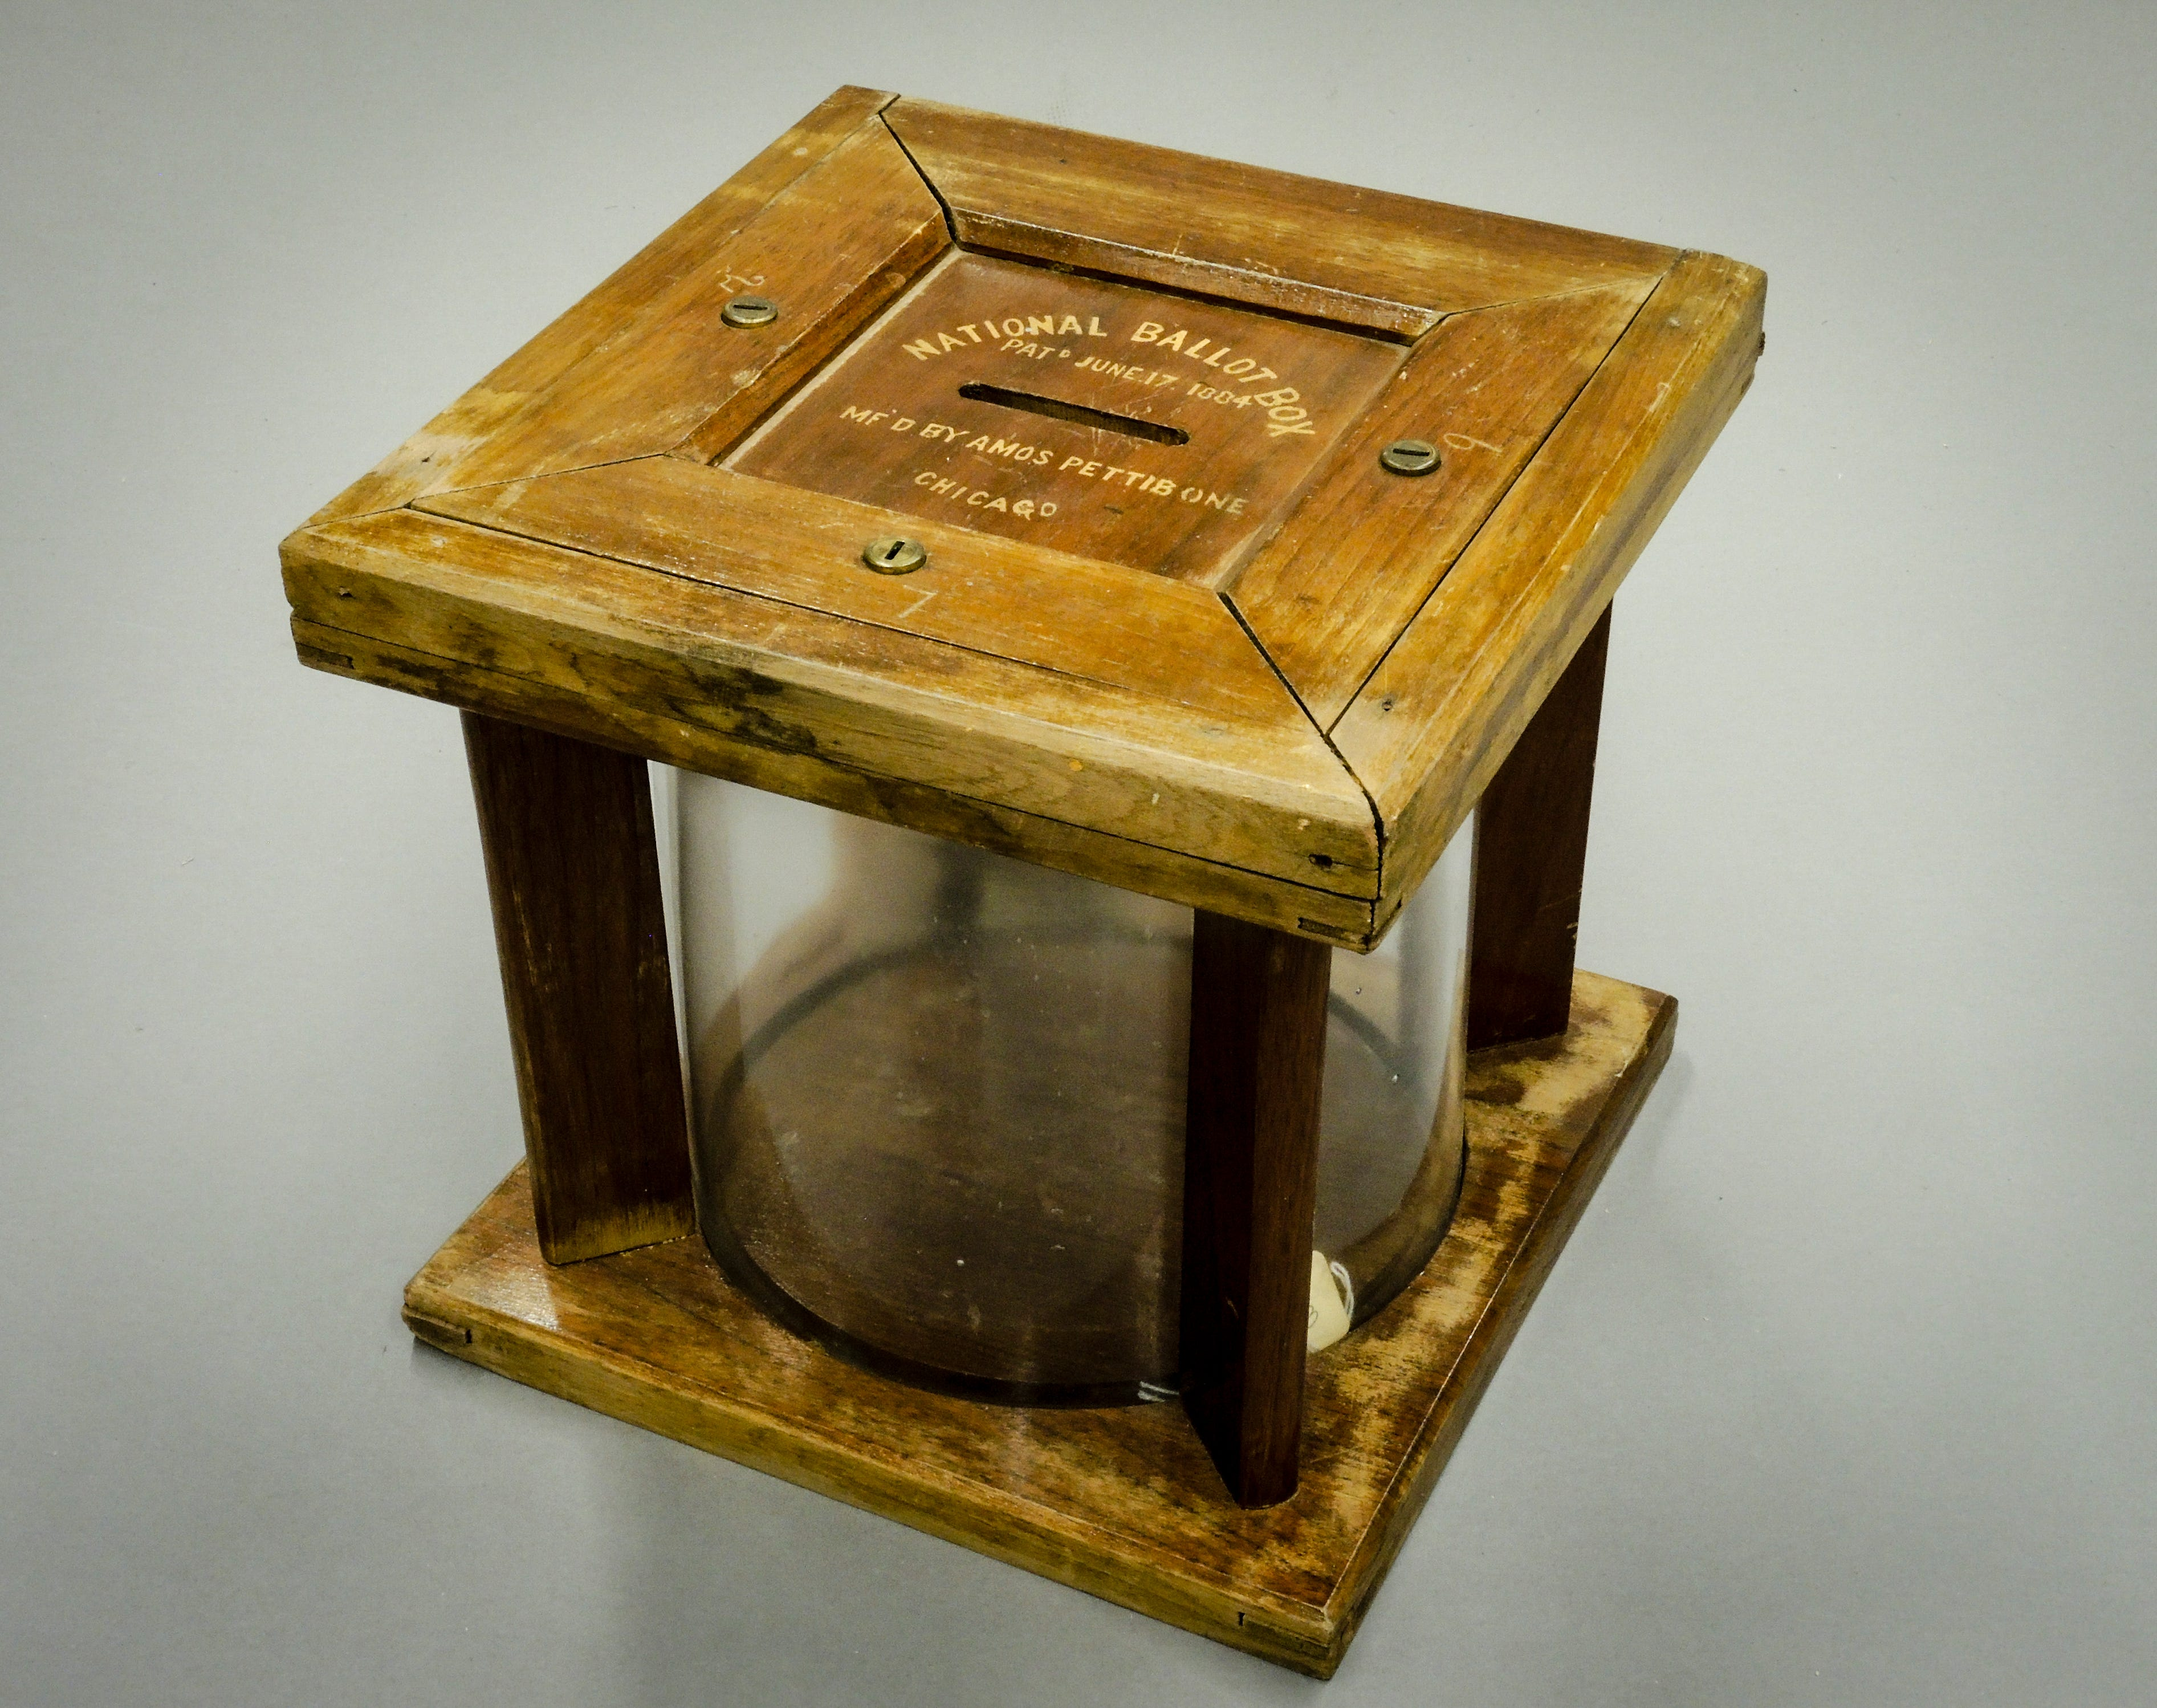 An 1884 general election ballot box from Costilla County, Colorado. The box dates back to just under a decade before Colorado women earned the right to vote through by public referendum.